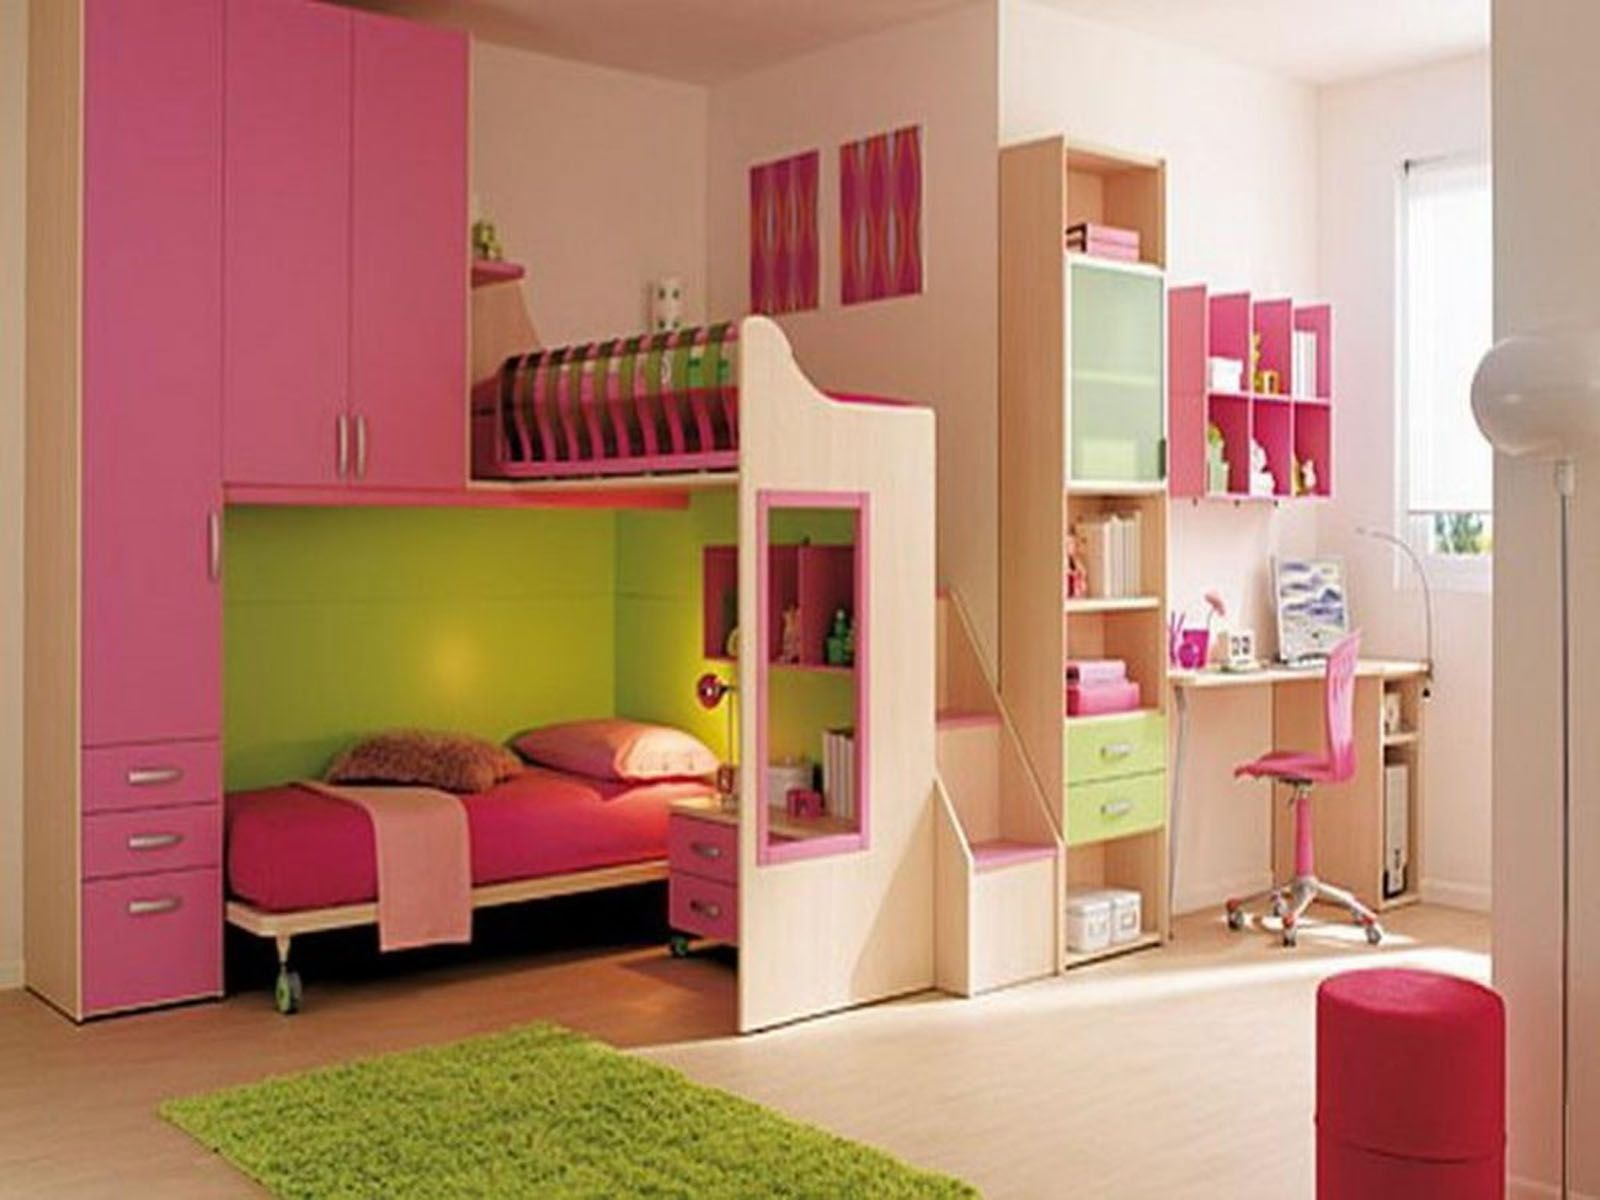 sweet trendy bedroom furniture stores. Snazzy Pink Bedroom Ideas And Decorating Pictures Collection: Trendy Custom Level Beds With Cabinets Sweet Wall Shelves Floating Study Furniture Stores